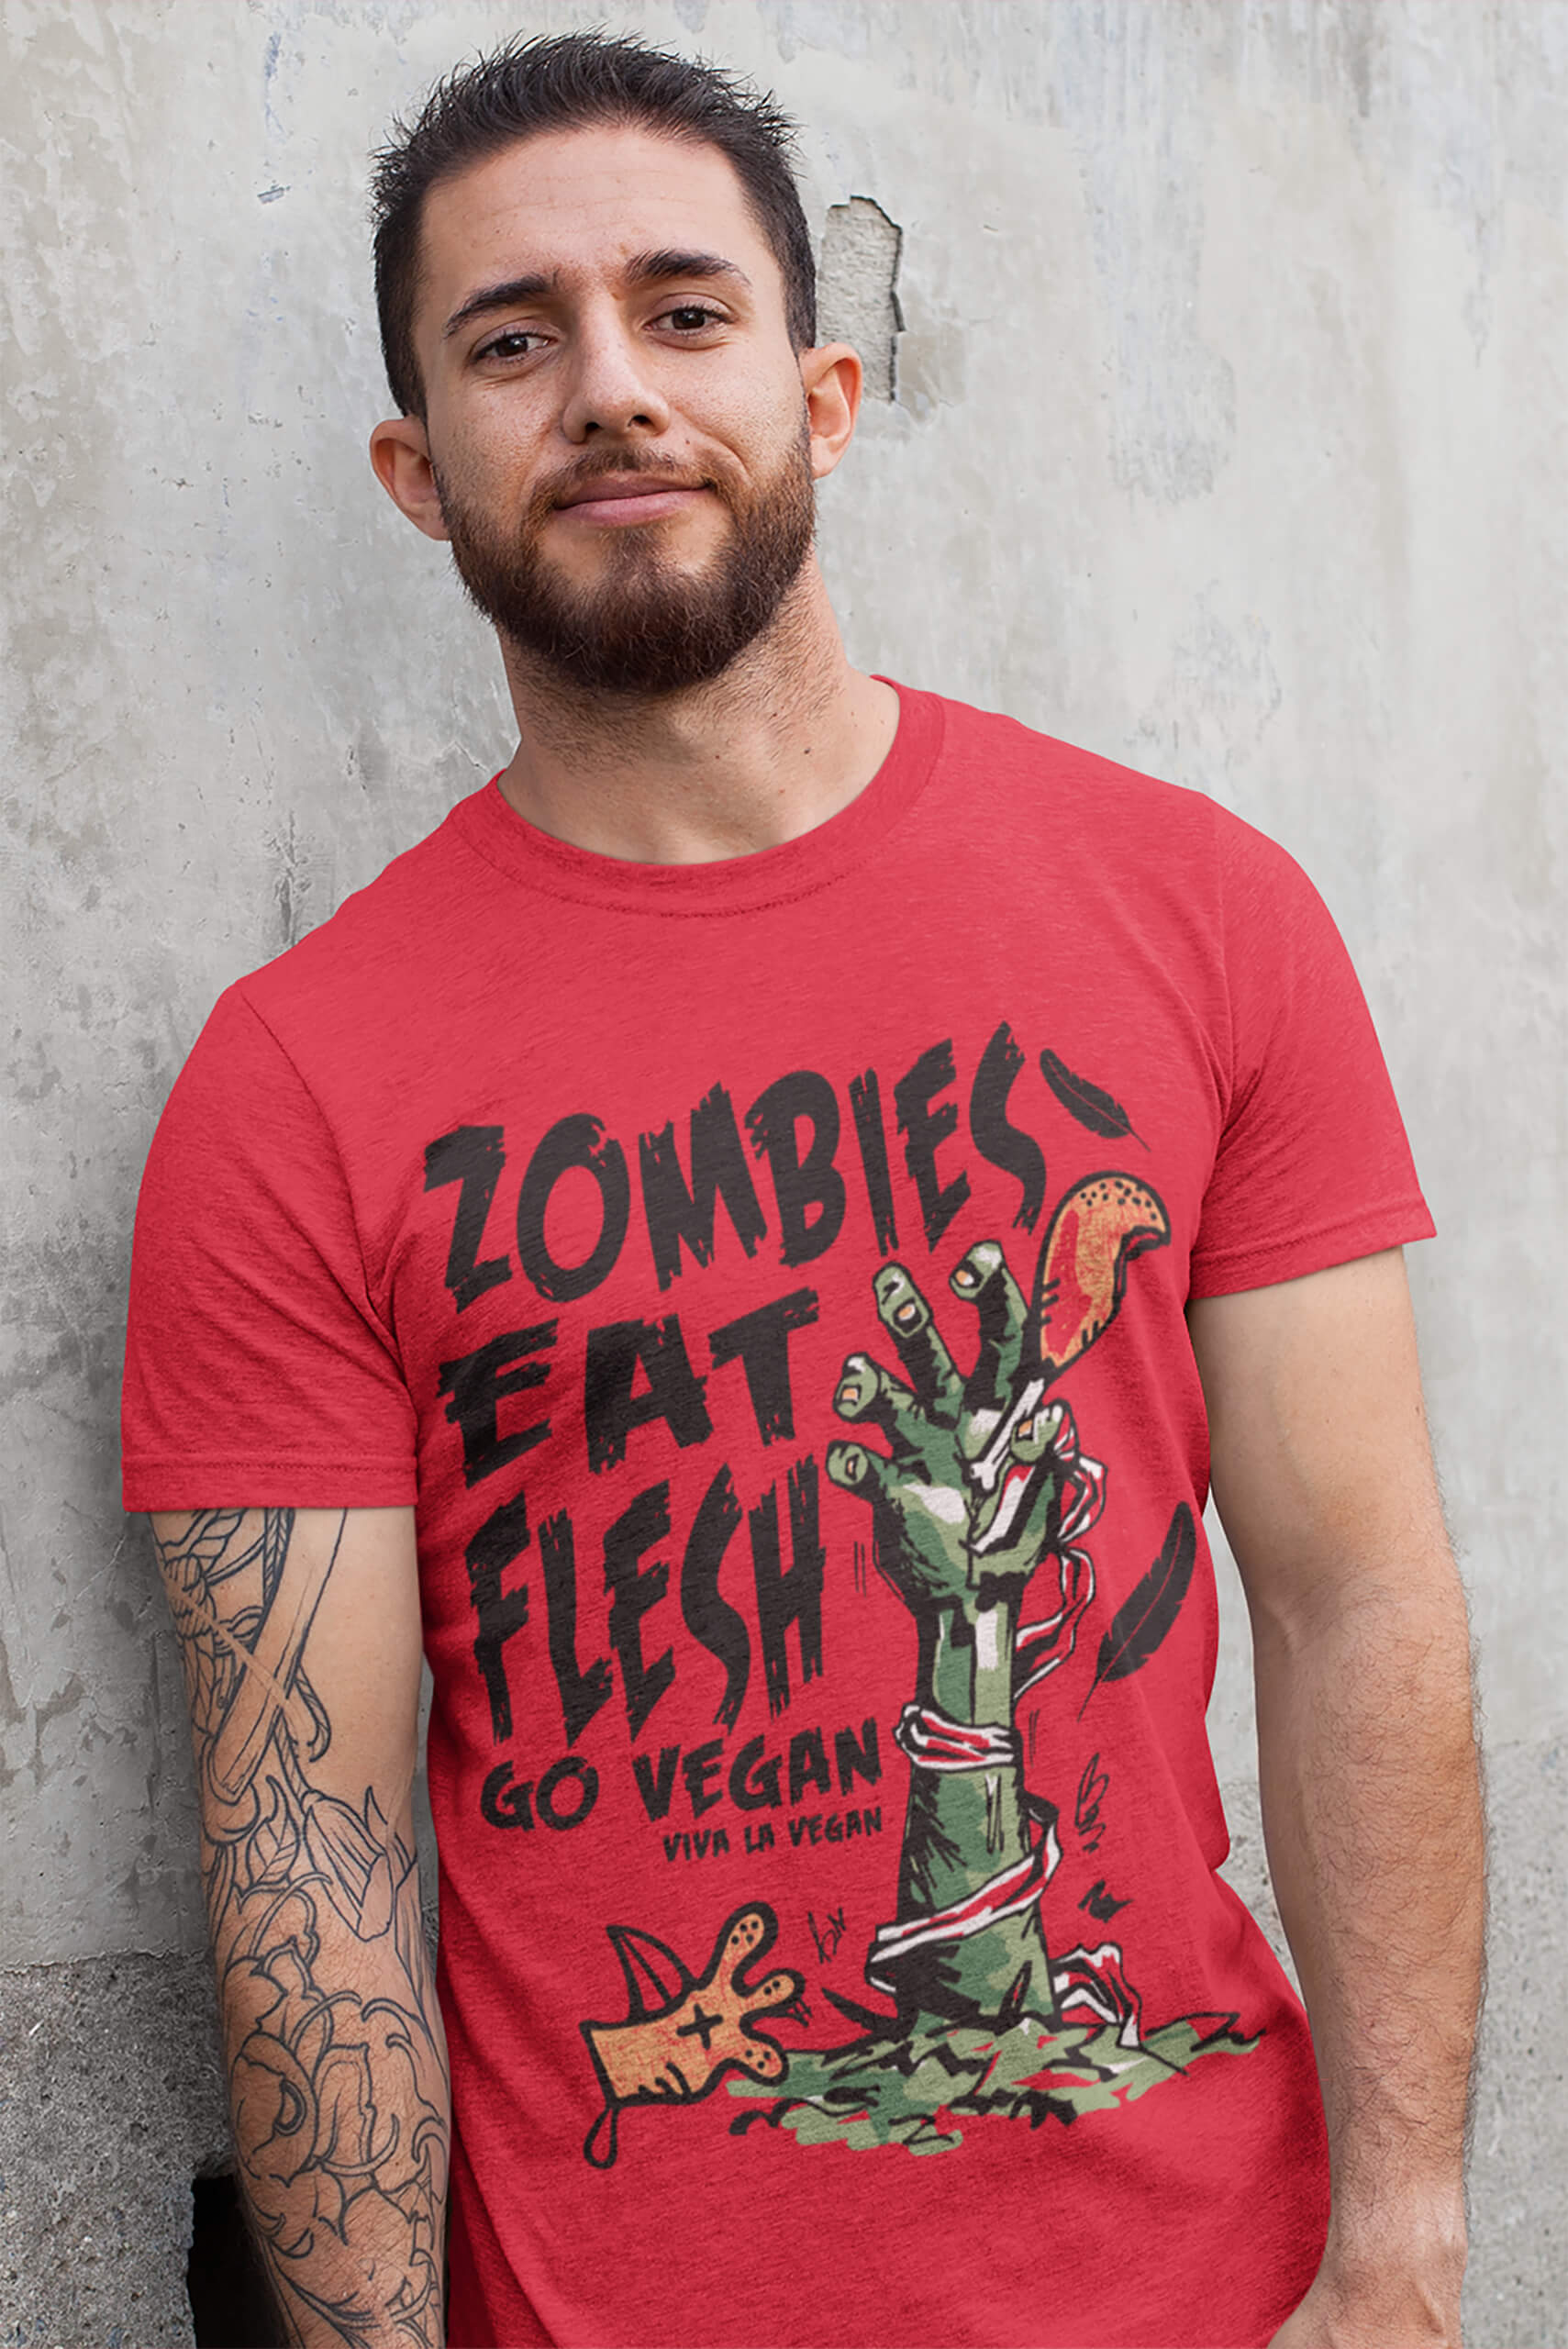 Unisex tshirt. Red Zombies eat flest go vegan by eco-ethical brand Viva La Vegan